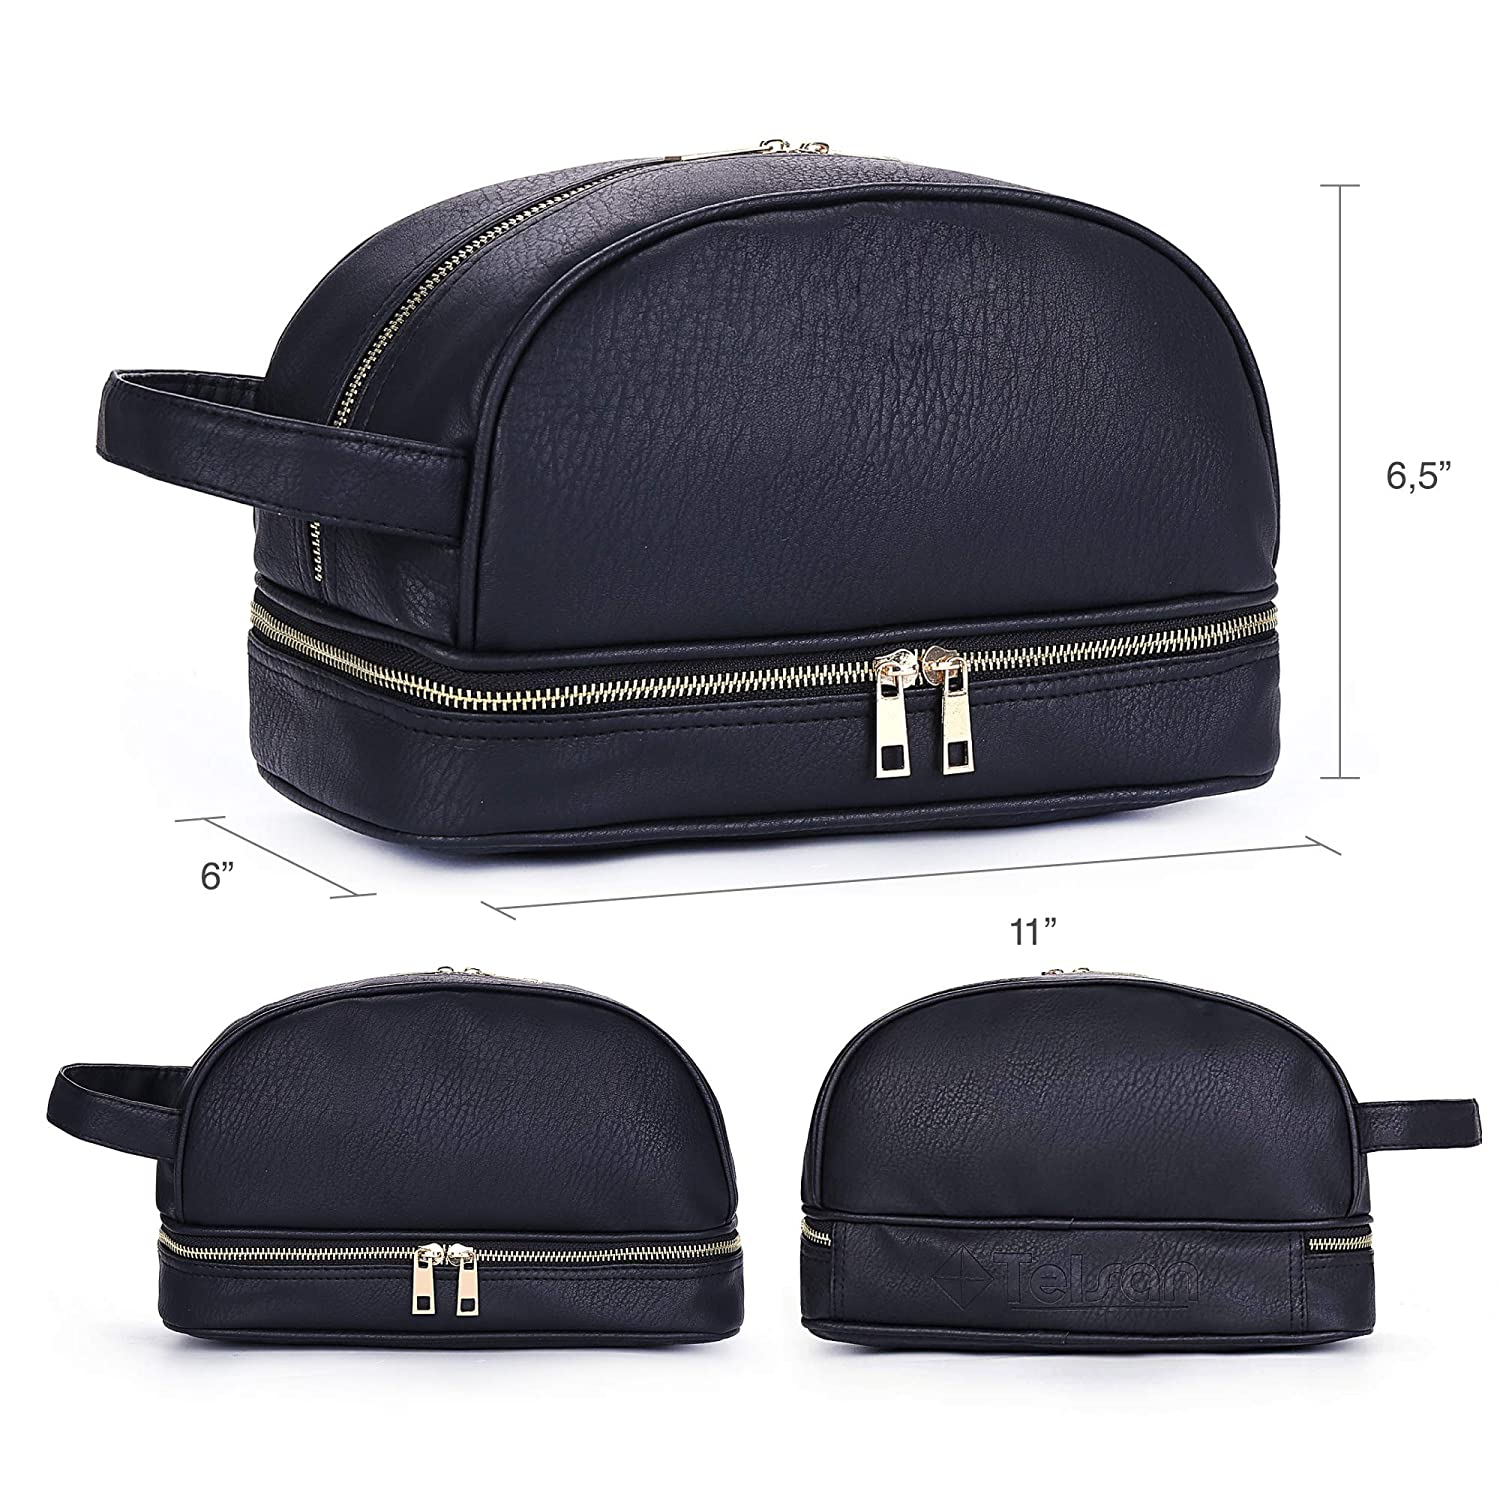 50b71173a826 Amazon.com   Leather Toiletry Bag For Men - Dopp Kit Travel Bags Toiletry  bag for Shaving Toilet Accessories Gifts for travelers men Ideal as Mens ...